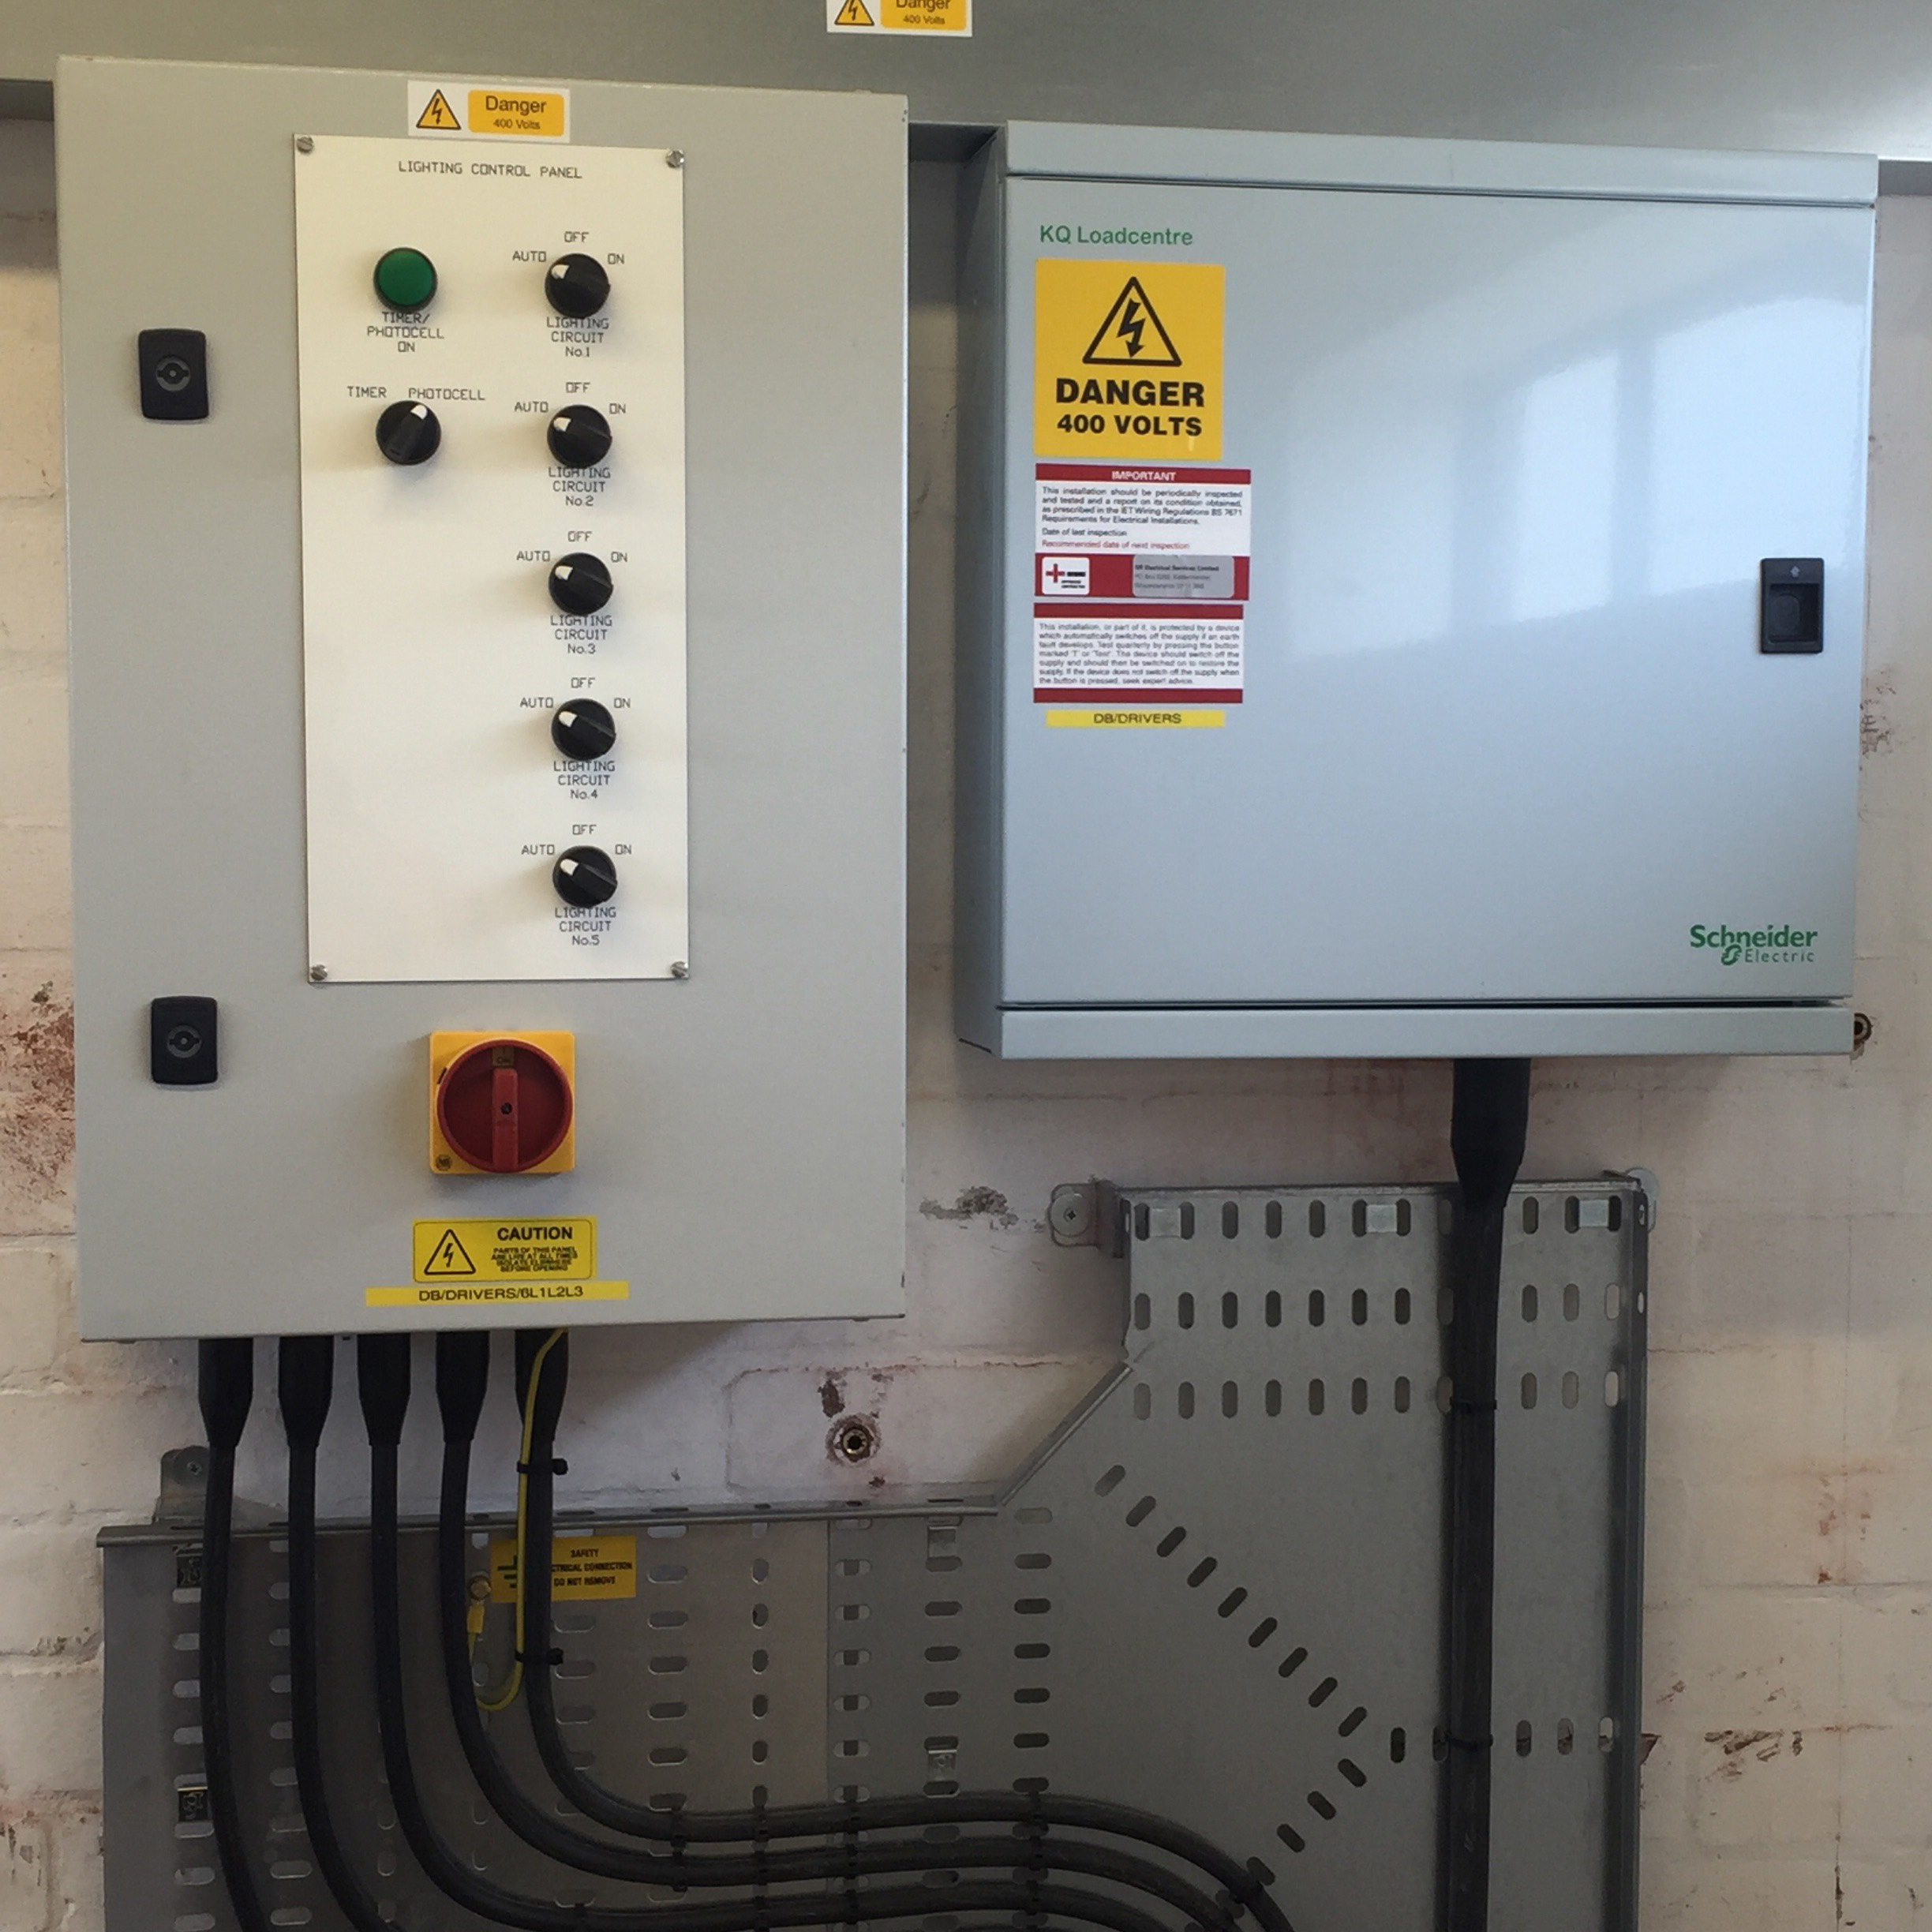 Sr Electrical Services Limited Do Manufacture Control Panels To Suit Our Customer S Needs And Requirements We Supply The Best Possible Solution For